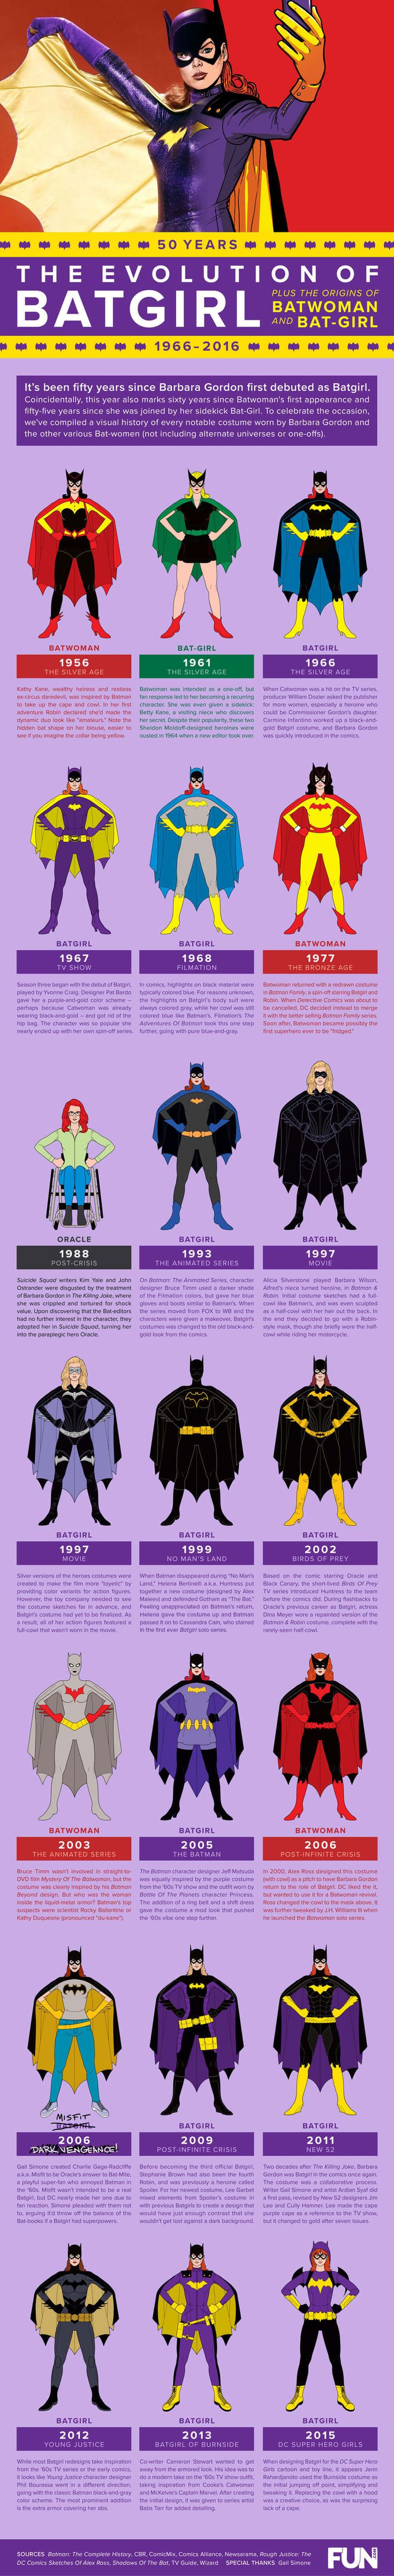 the-evolution-of-batgirl-infographic